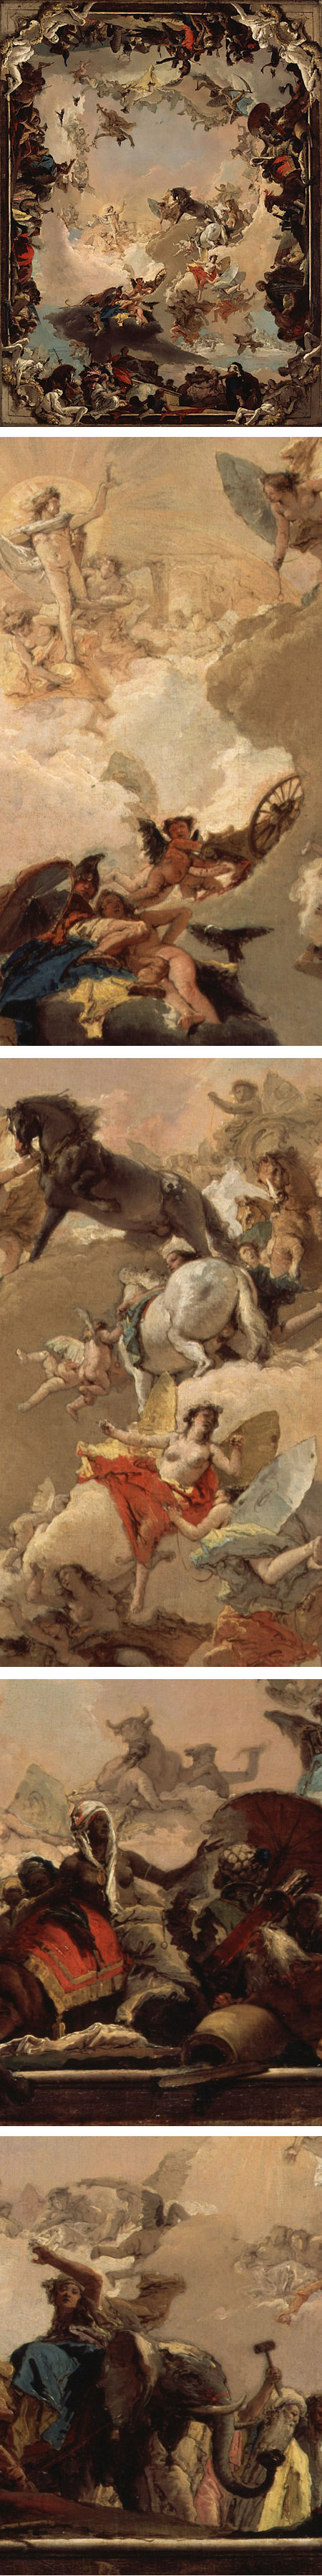 Allegory of the Planets and Continents by Giovanni Battista Tiepolo.